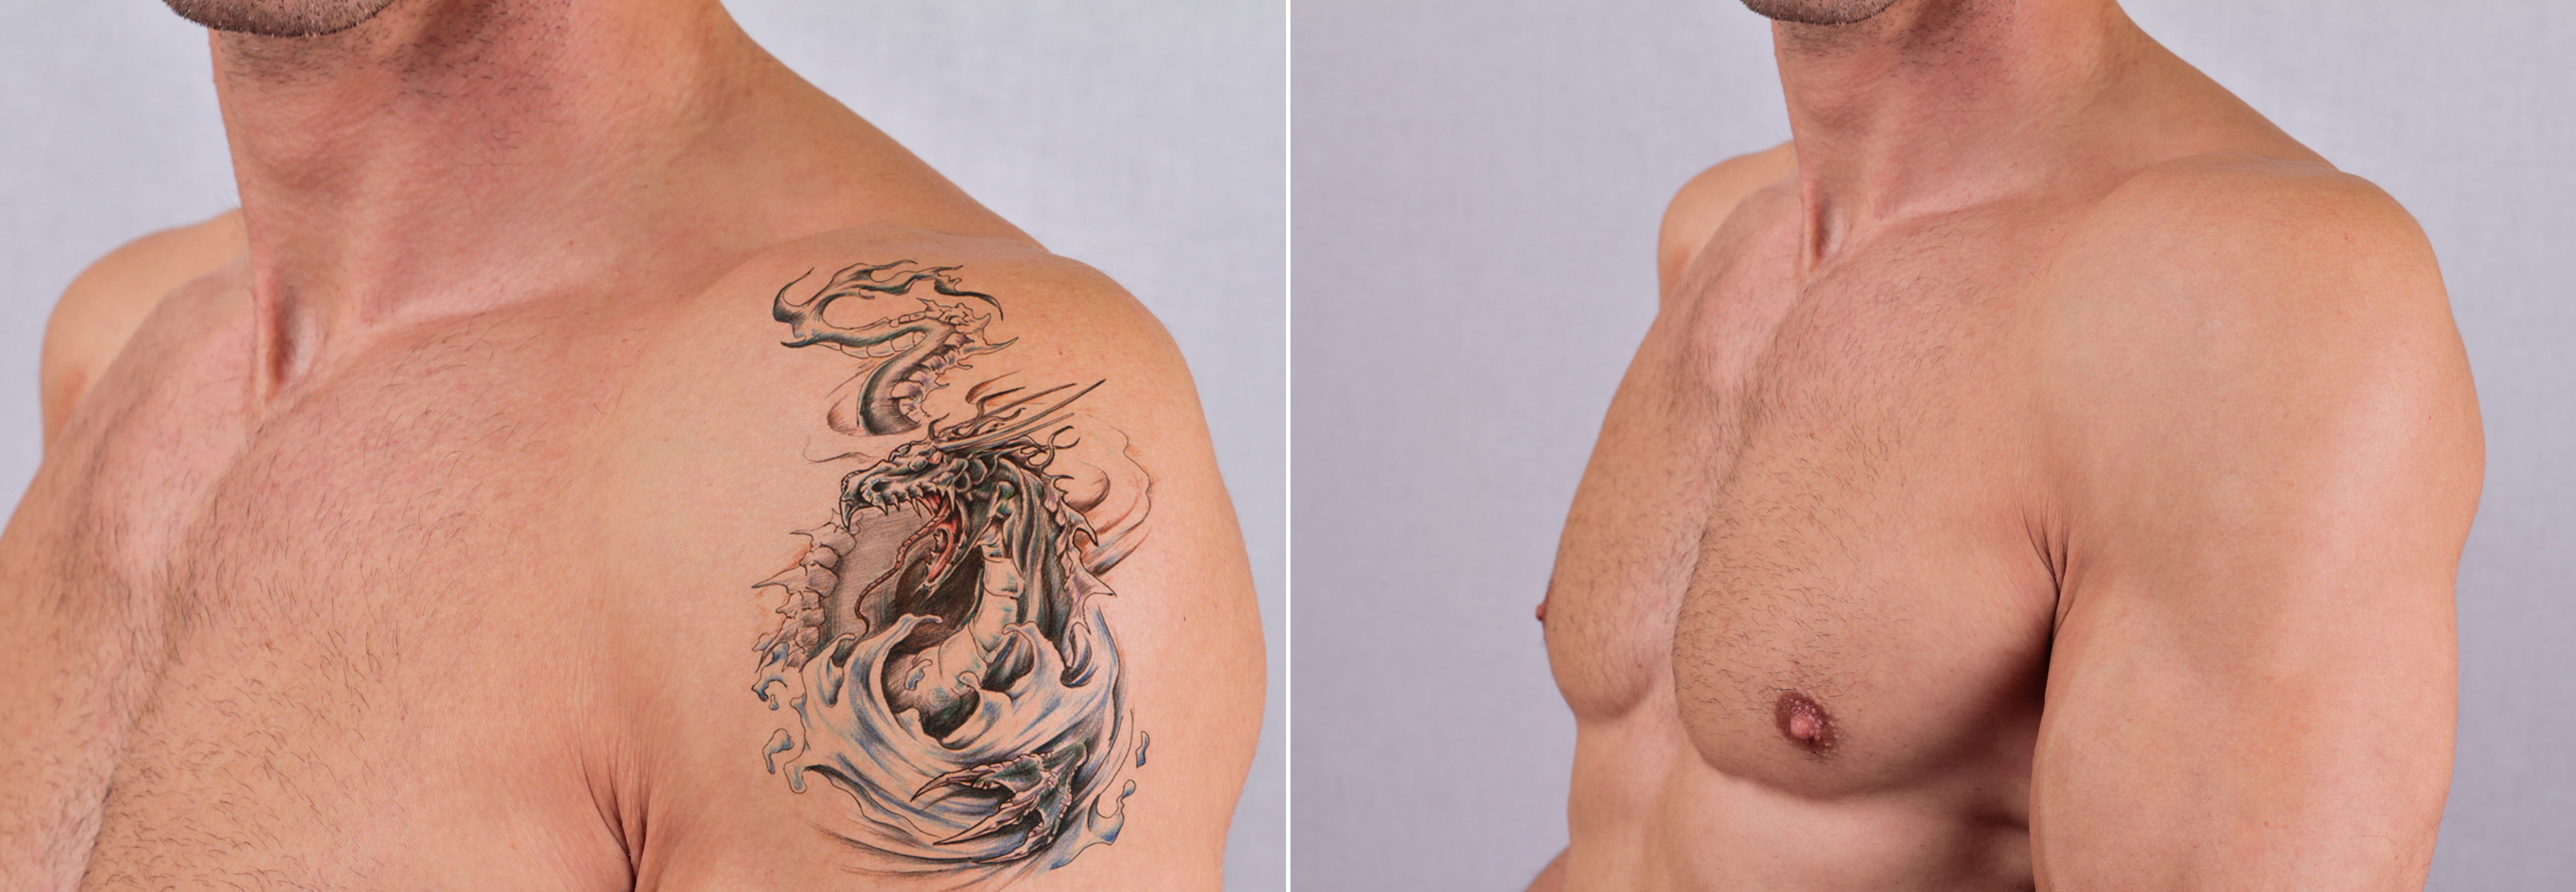 Laser Tattoo Removal Treatment at Affordable Prices in Nairobi Kenya